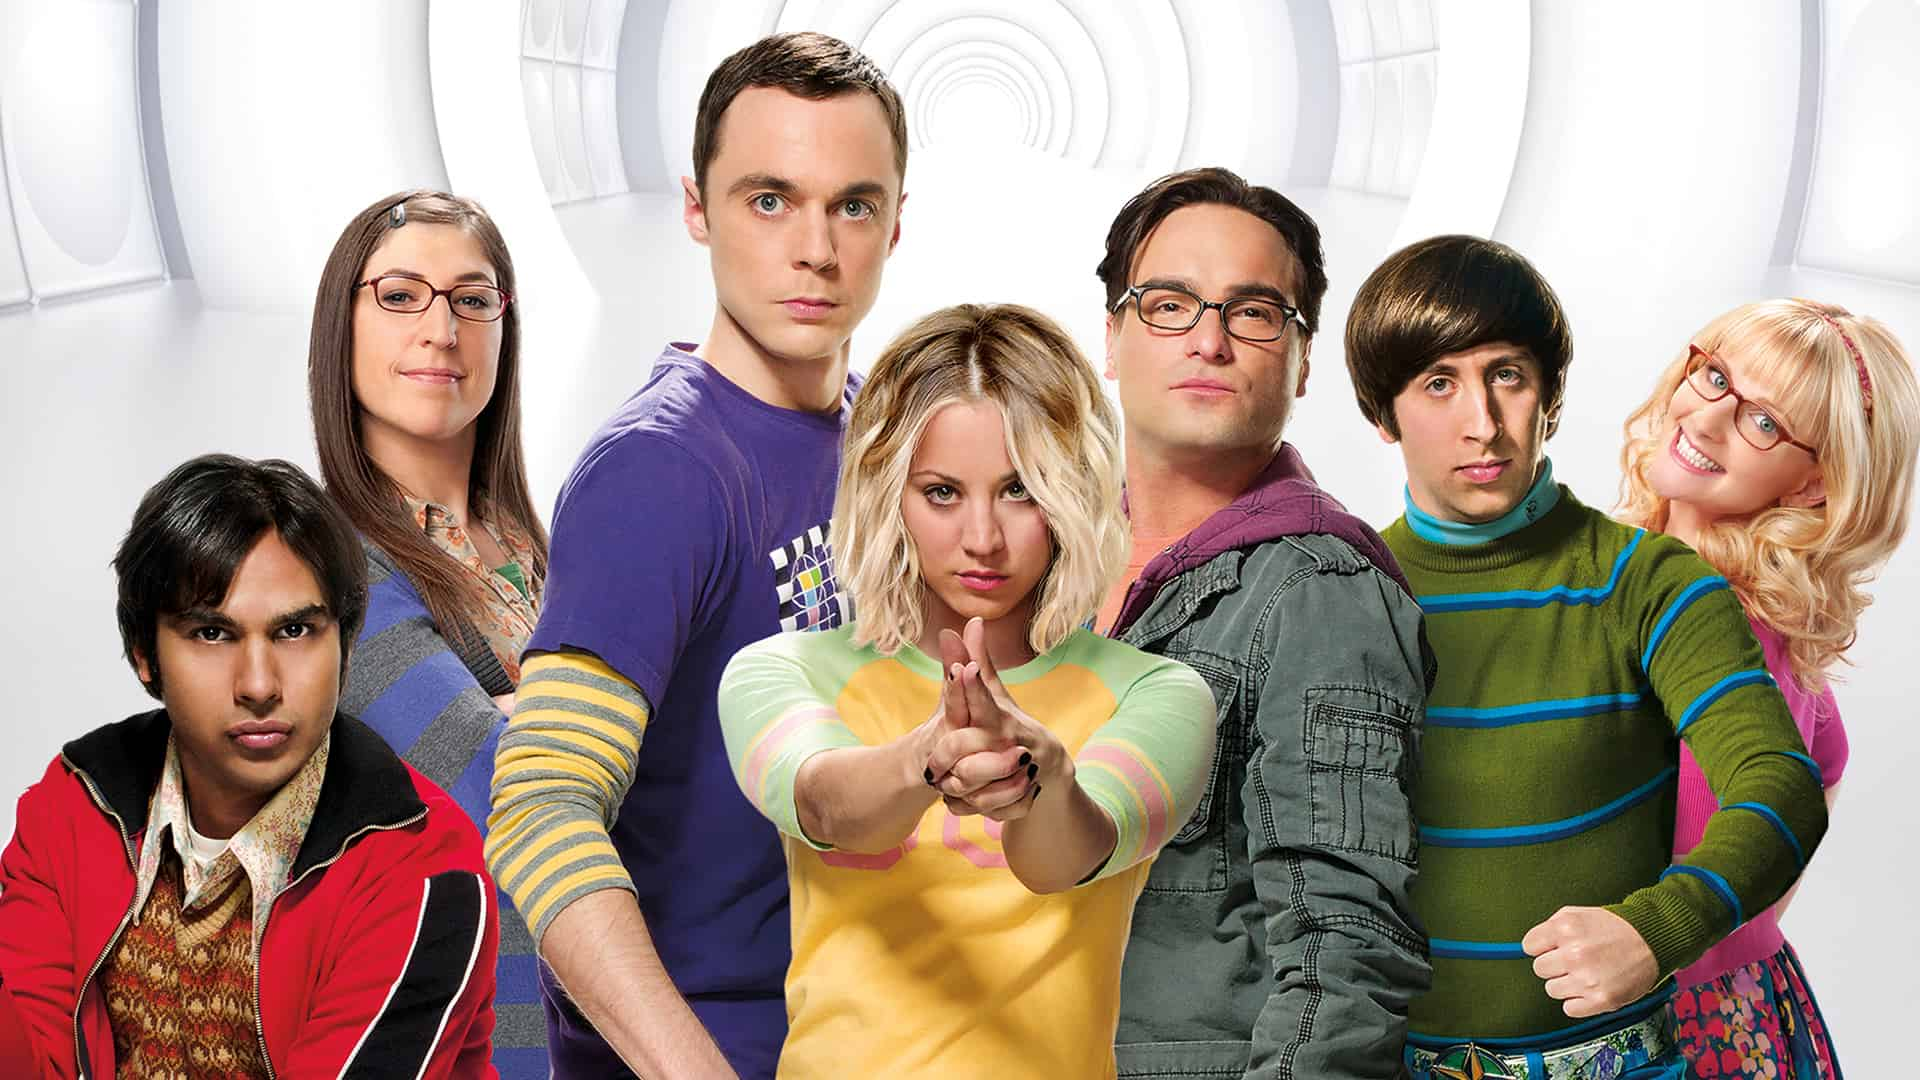 """<a target=""""_blank"""" title=""""The Big Bang Theory"""" href=""""https://www.begeek.fr/the-big-bang-theory"""">The Big Bang Theory</a>"""